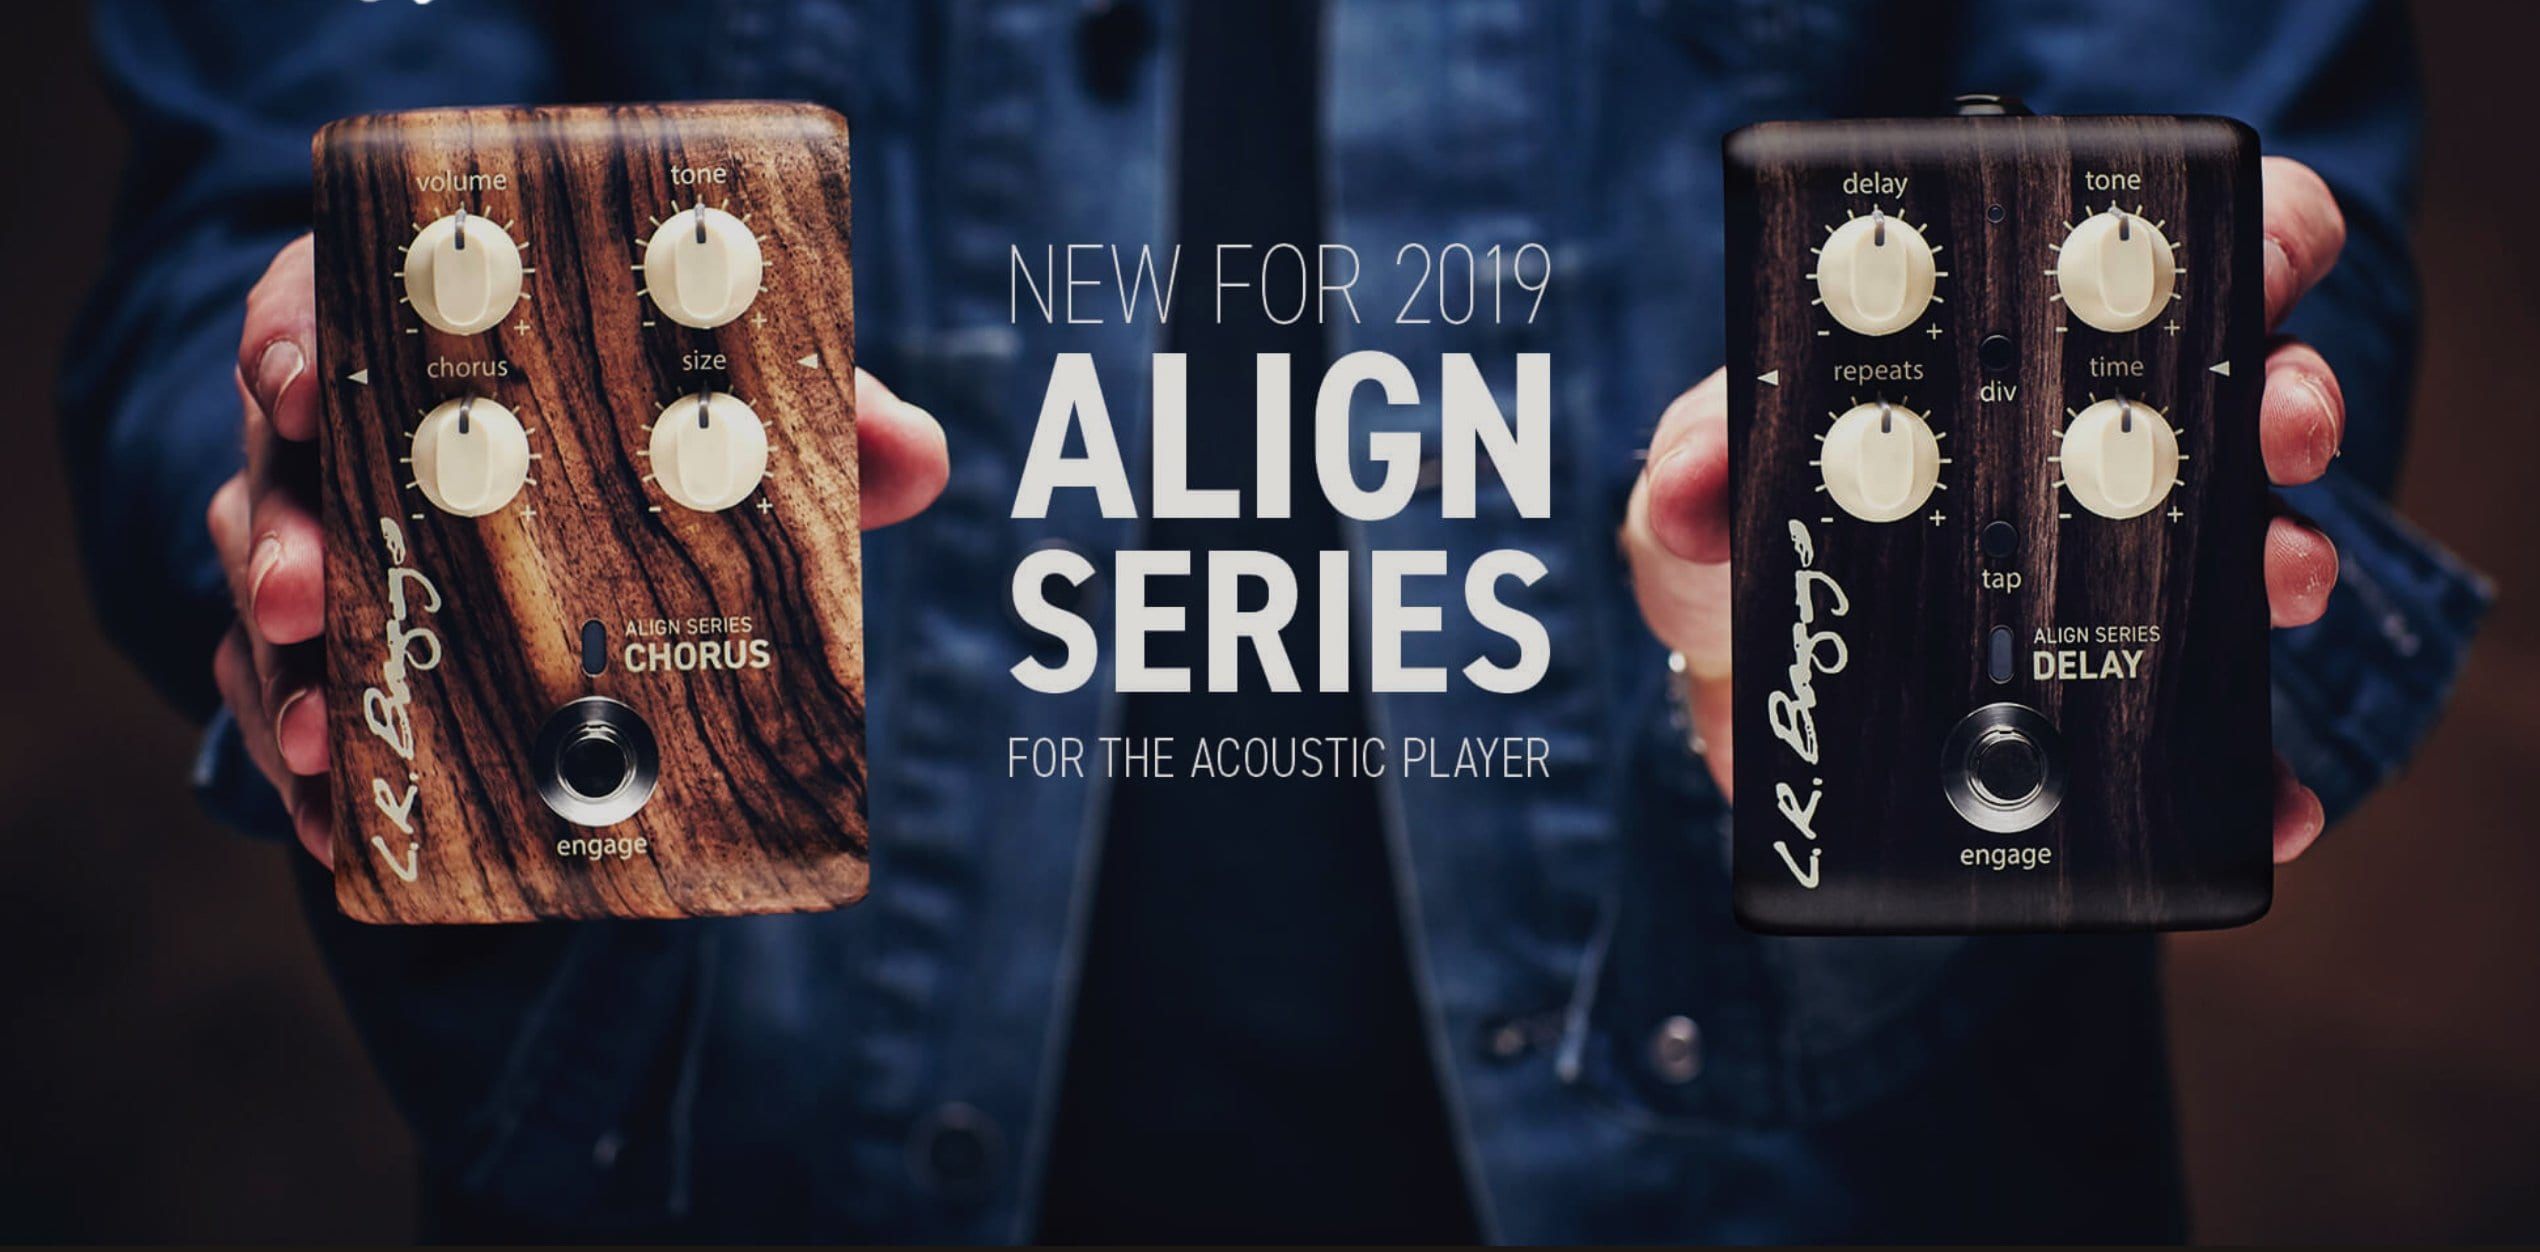 NAMM 2019- LR Baggs Align Series adds new chorus and delay for 2019